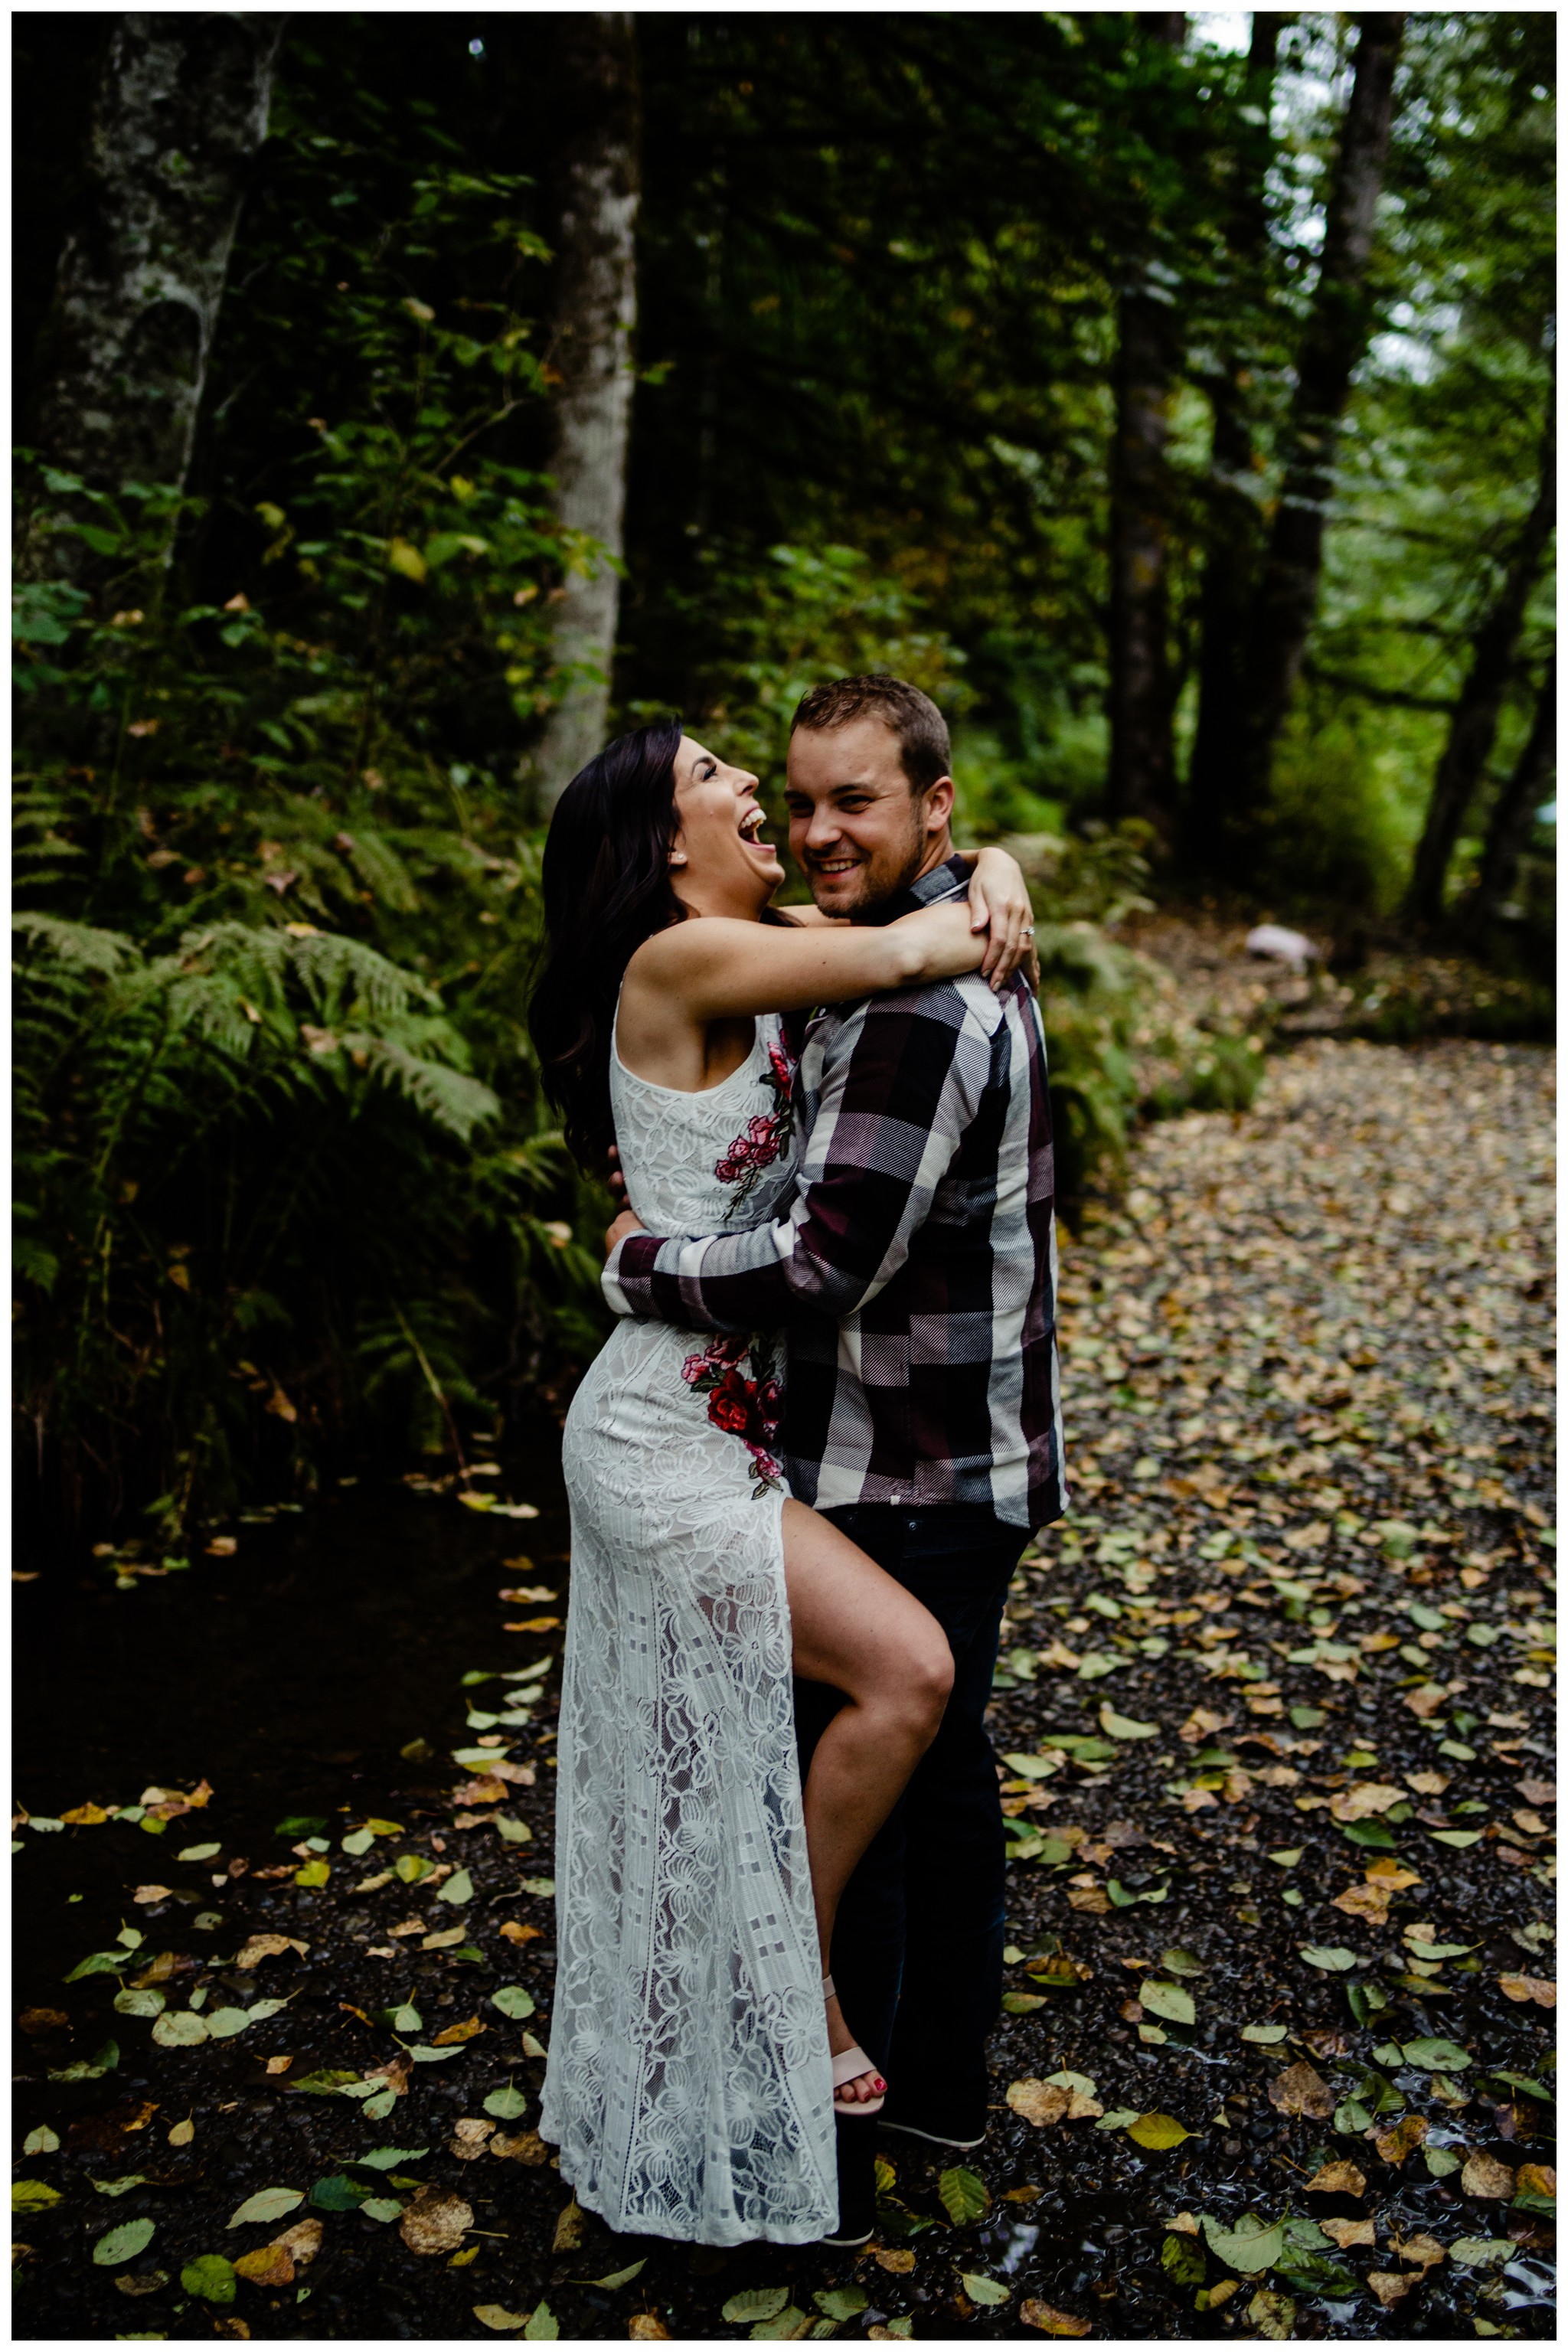 Williams Park Aldergrove Engagement Photographer Moody Fall Couple River Water Romantic Pose Yellow Leaves White Dress Dark_0011.jpg